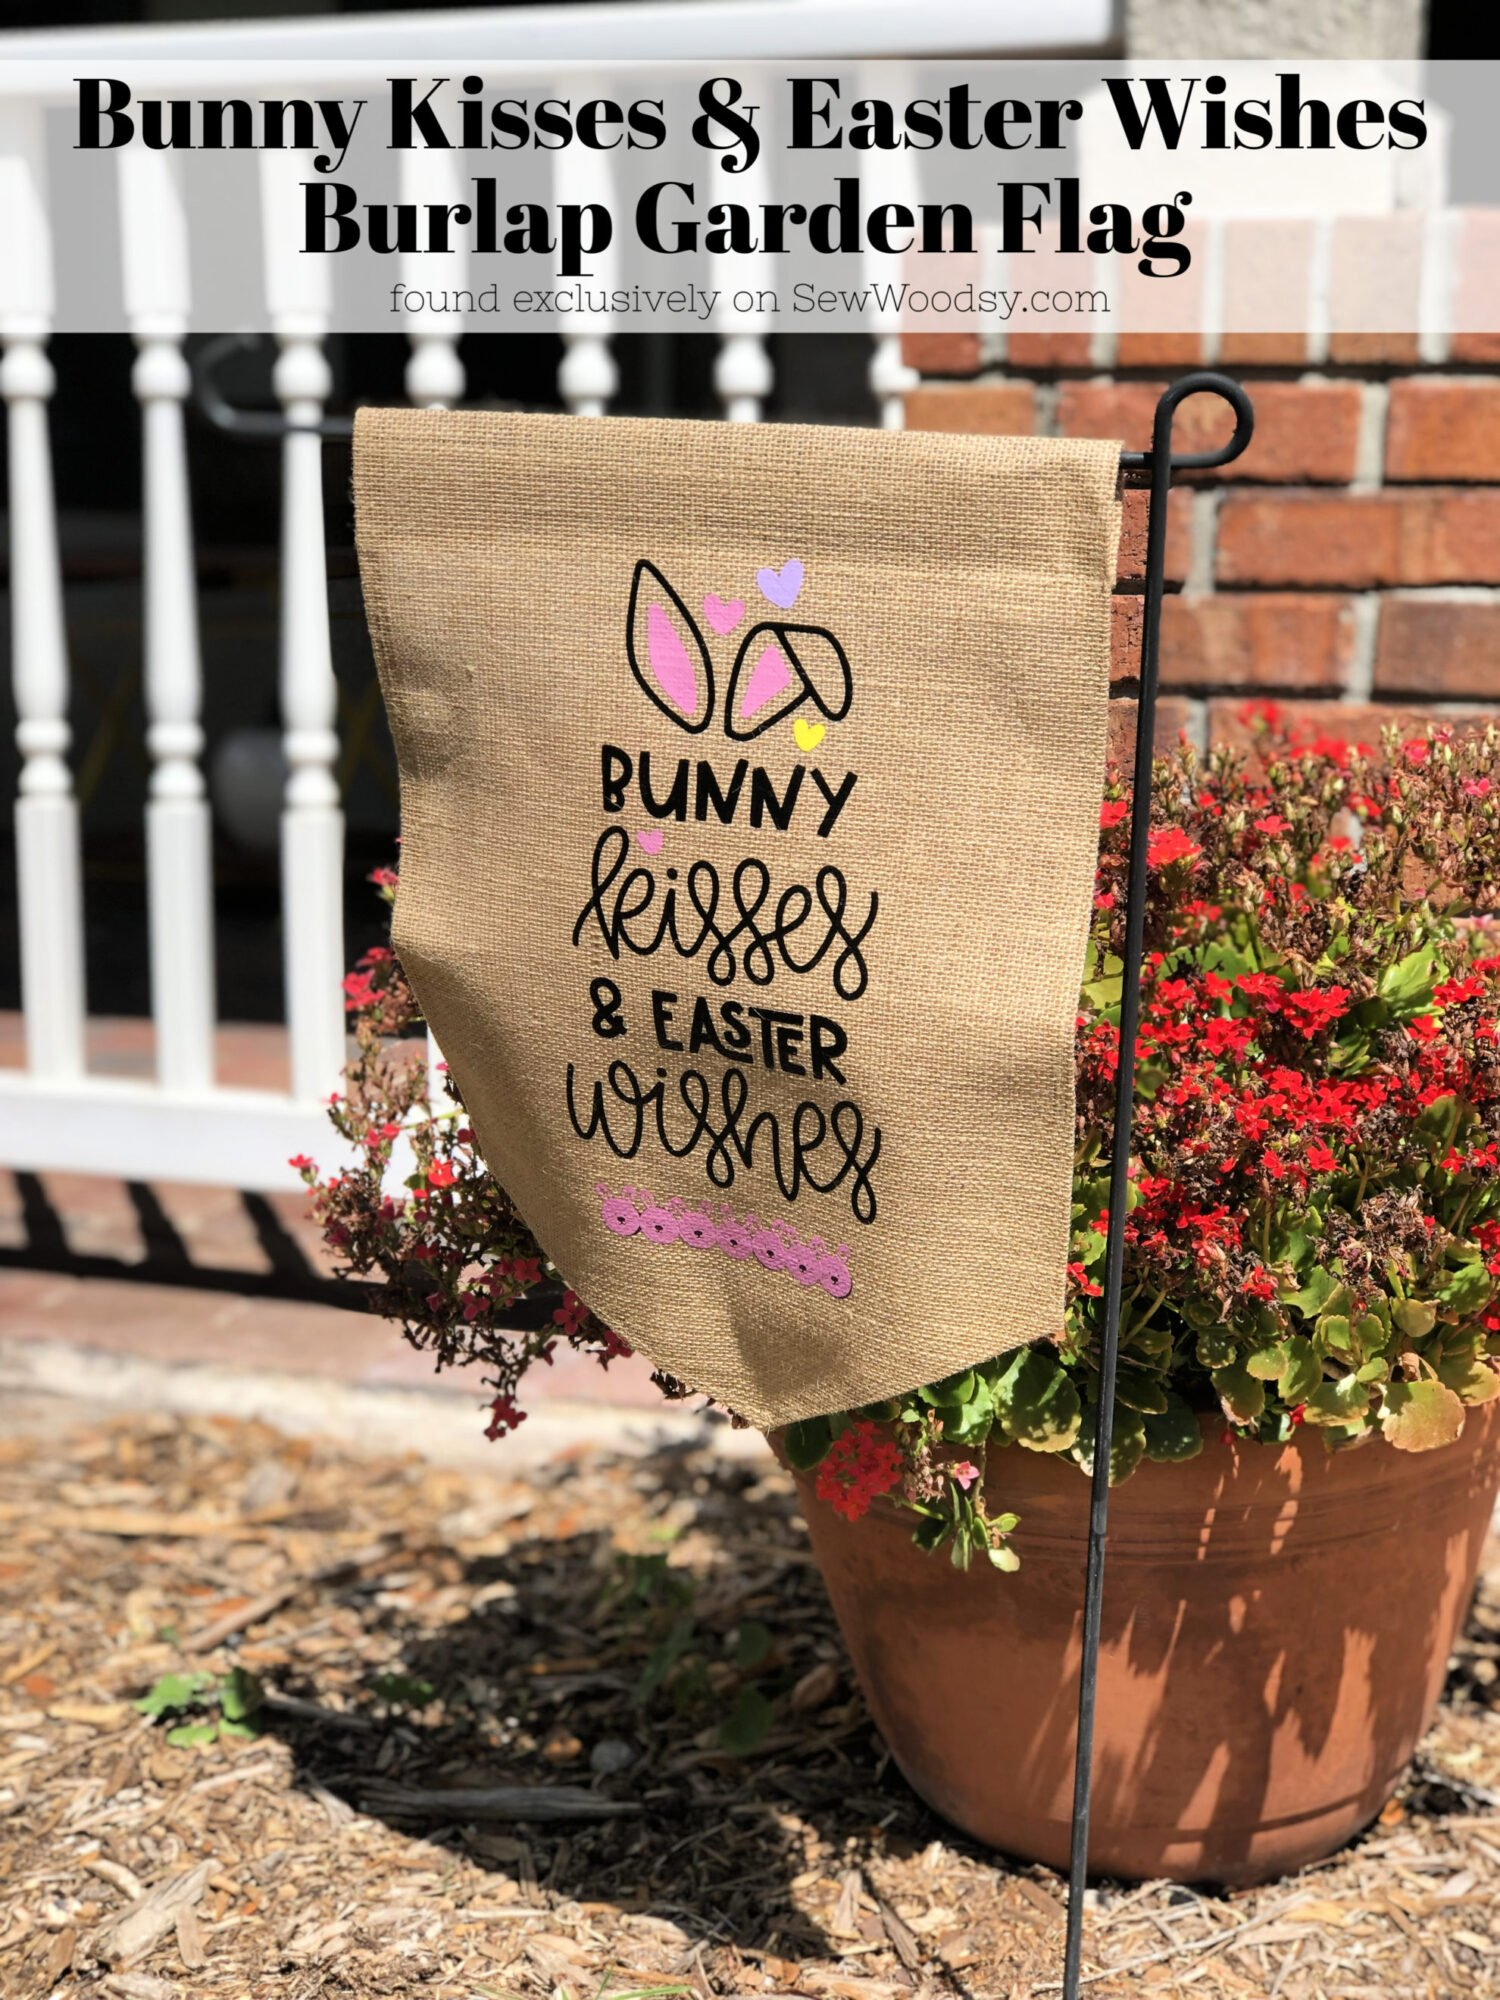 Bunny Kisses & Easter Wishes Burlap Garden Flag